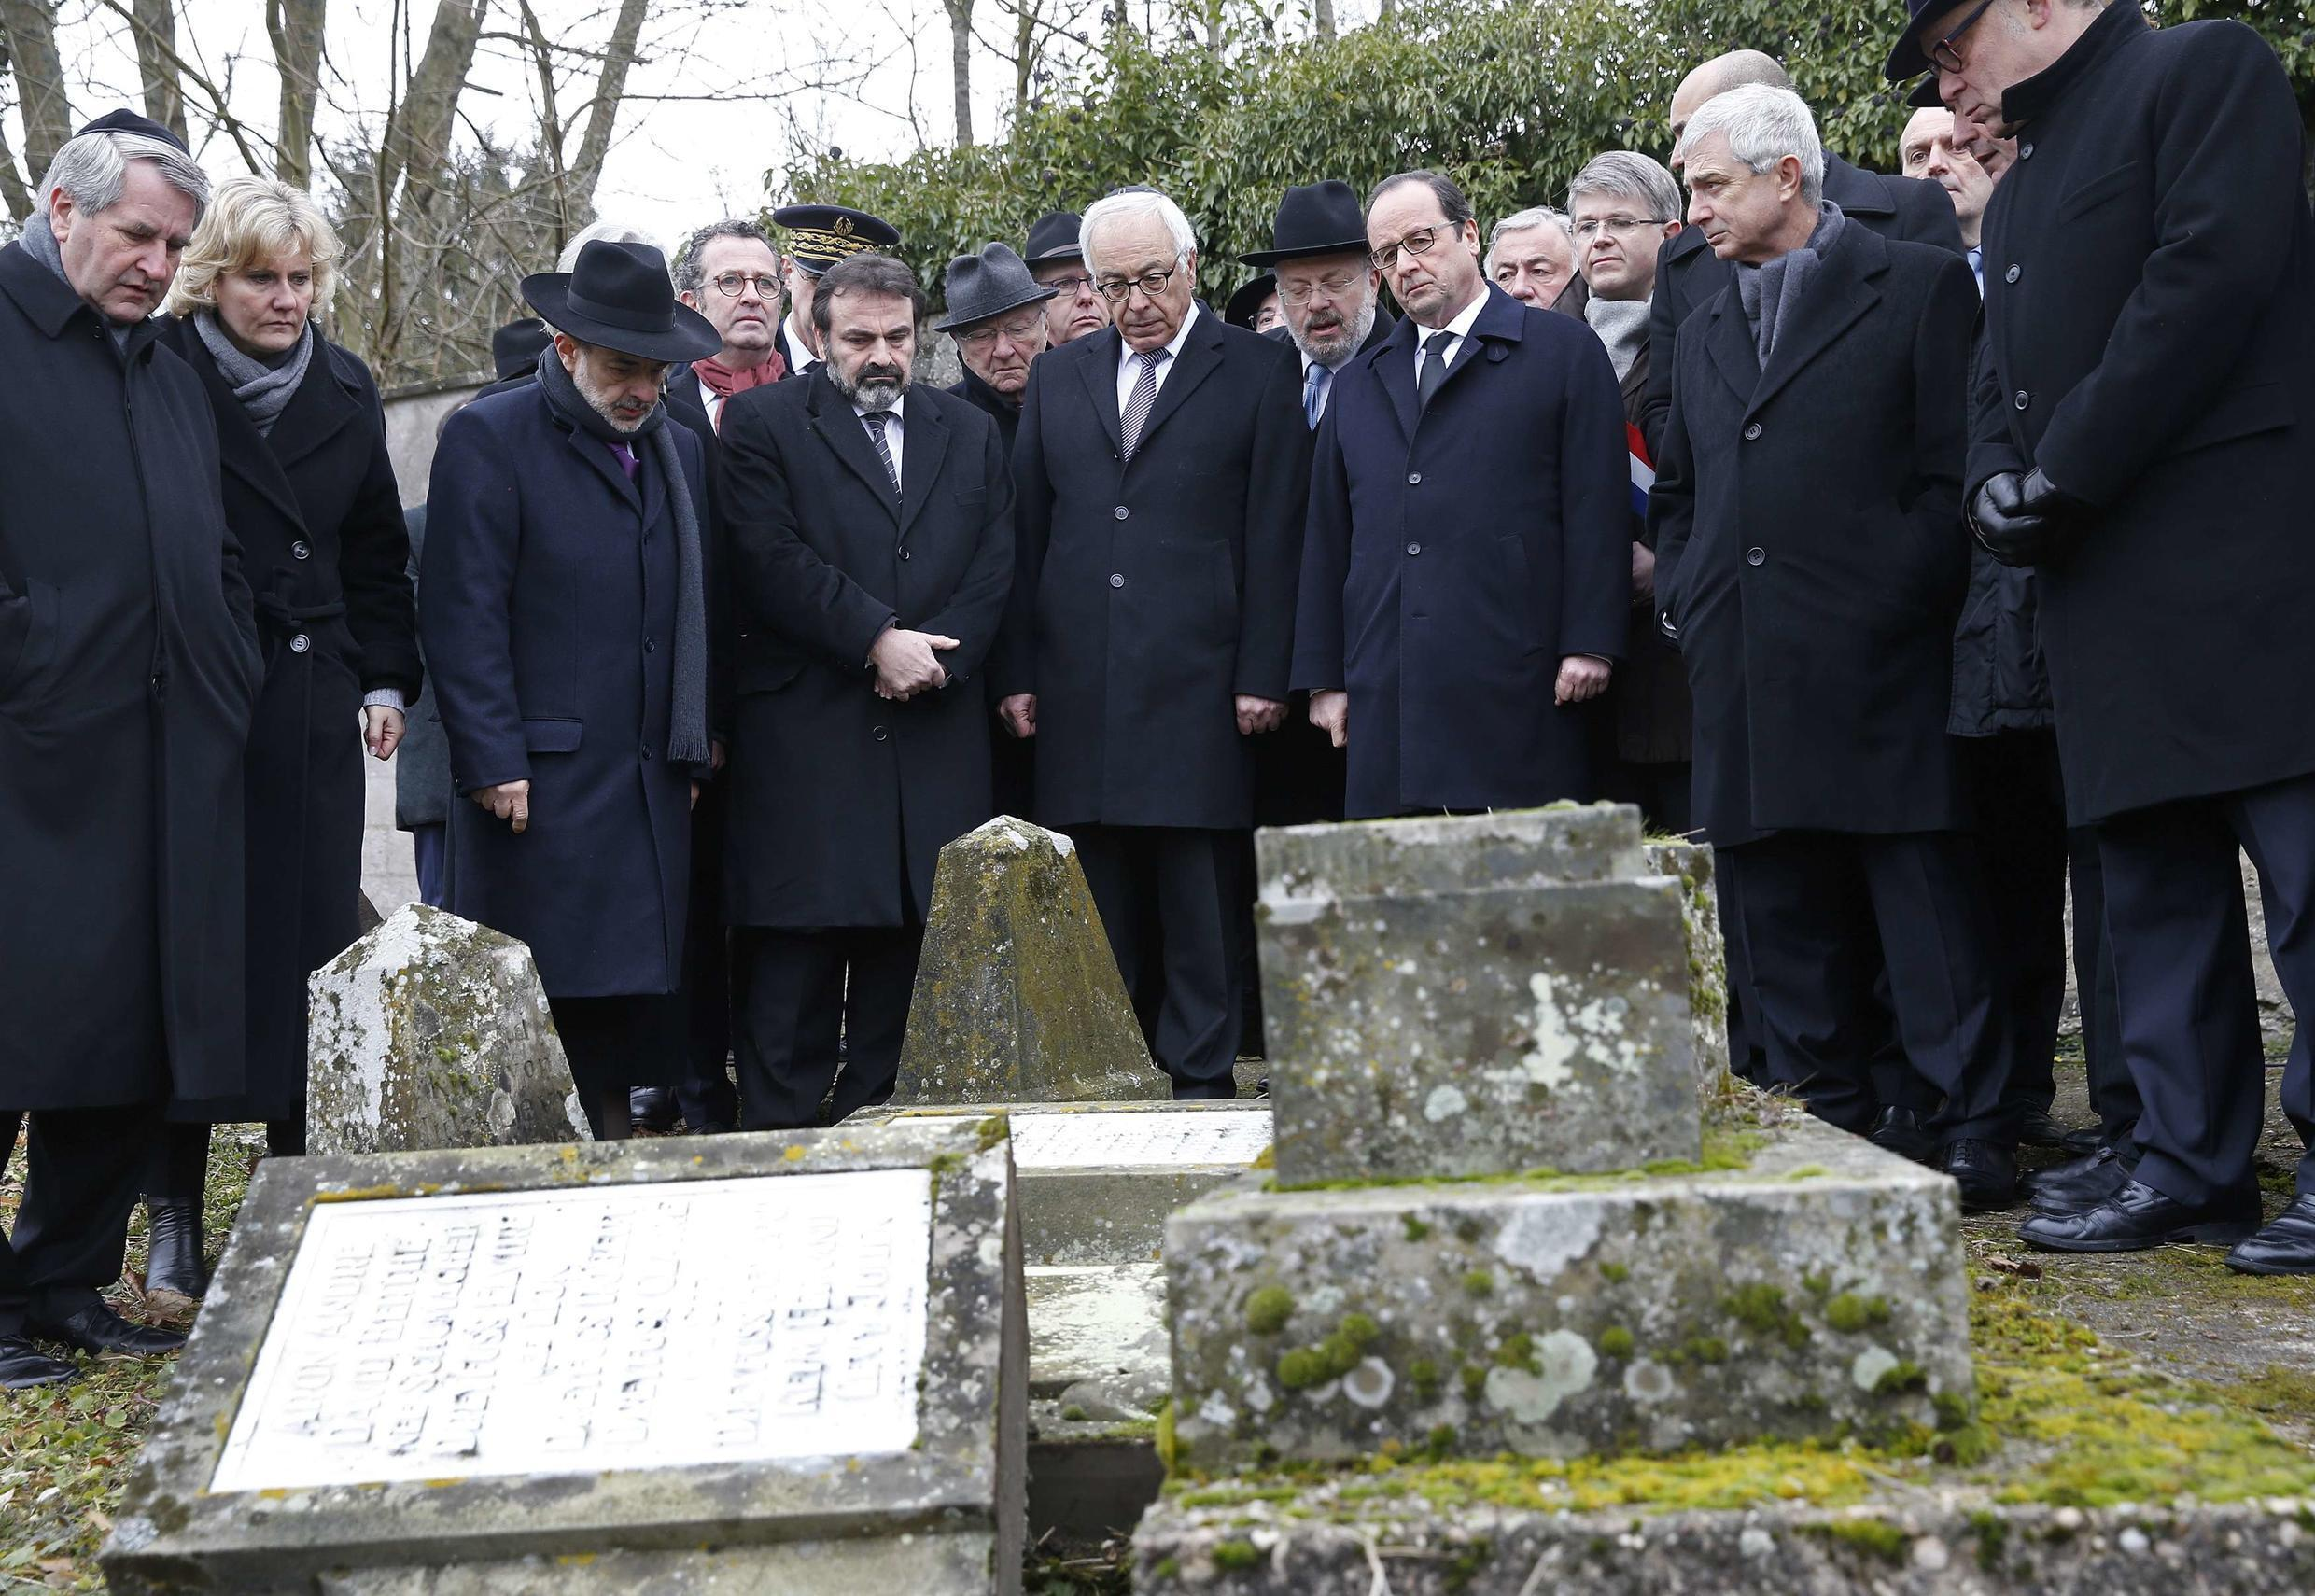 French President François Hollande at a Jewish cemetery in the city of Sarre-Union in the Alsace region on 17 February 2015.